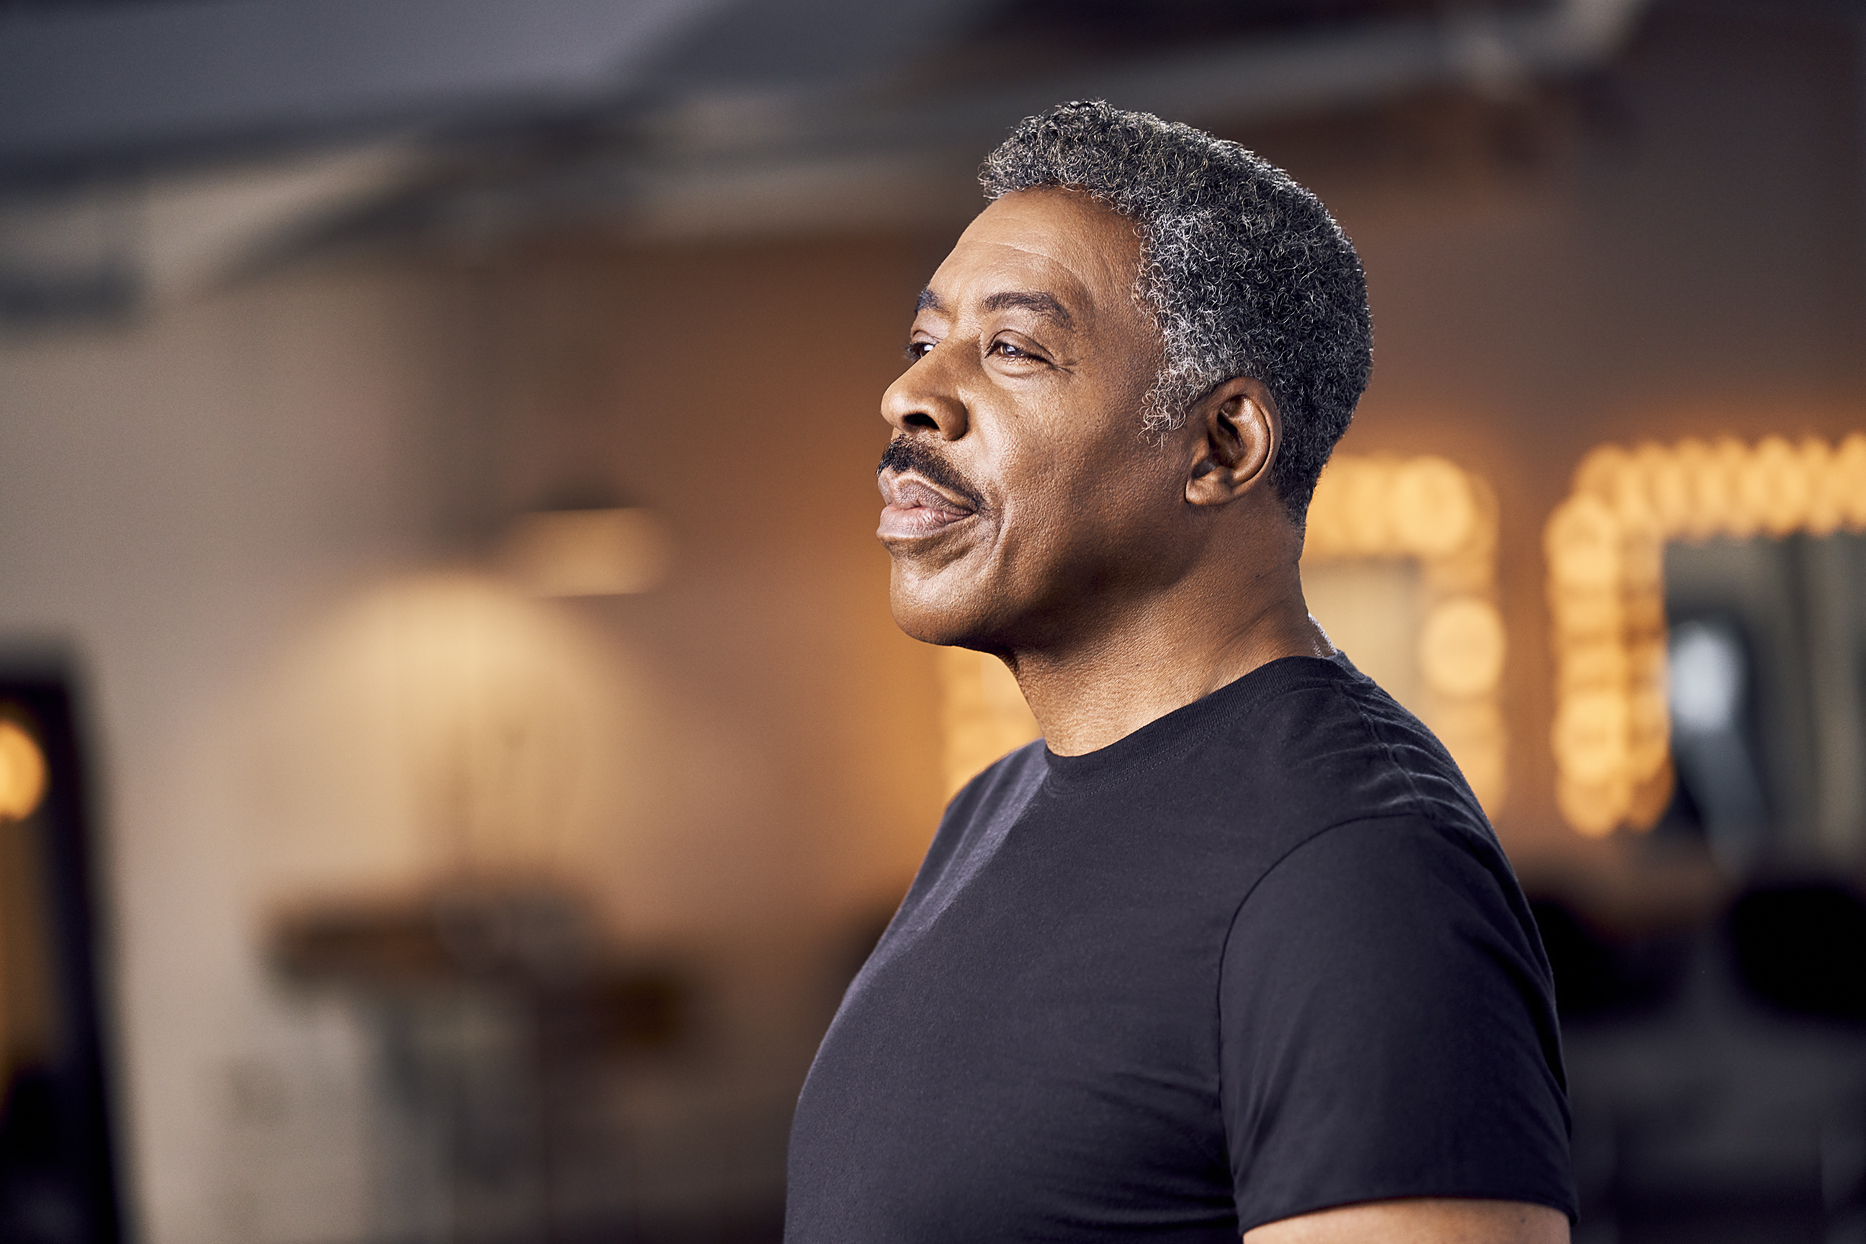 Ernie Hudson - Think About the Link